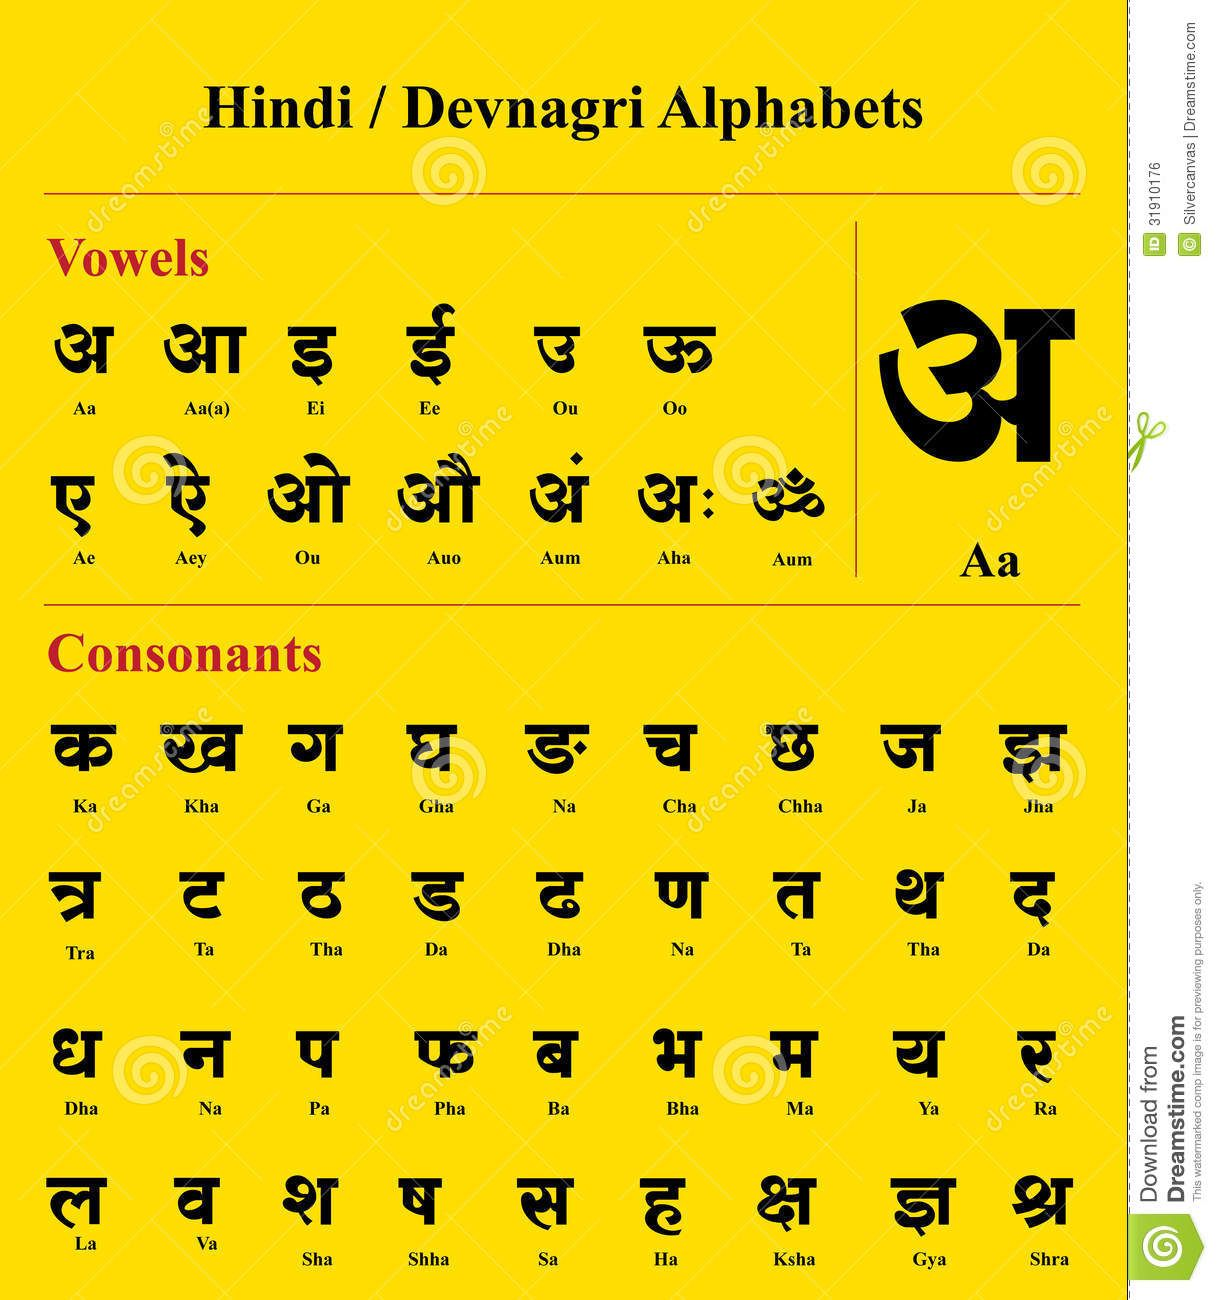 Hindi Devnagari Alphabet Devanagari English Translation 31910176 1217x1300